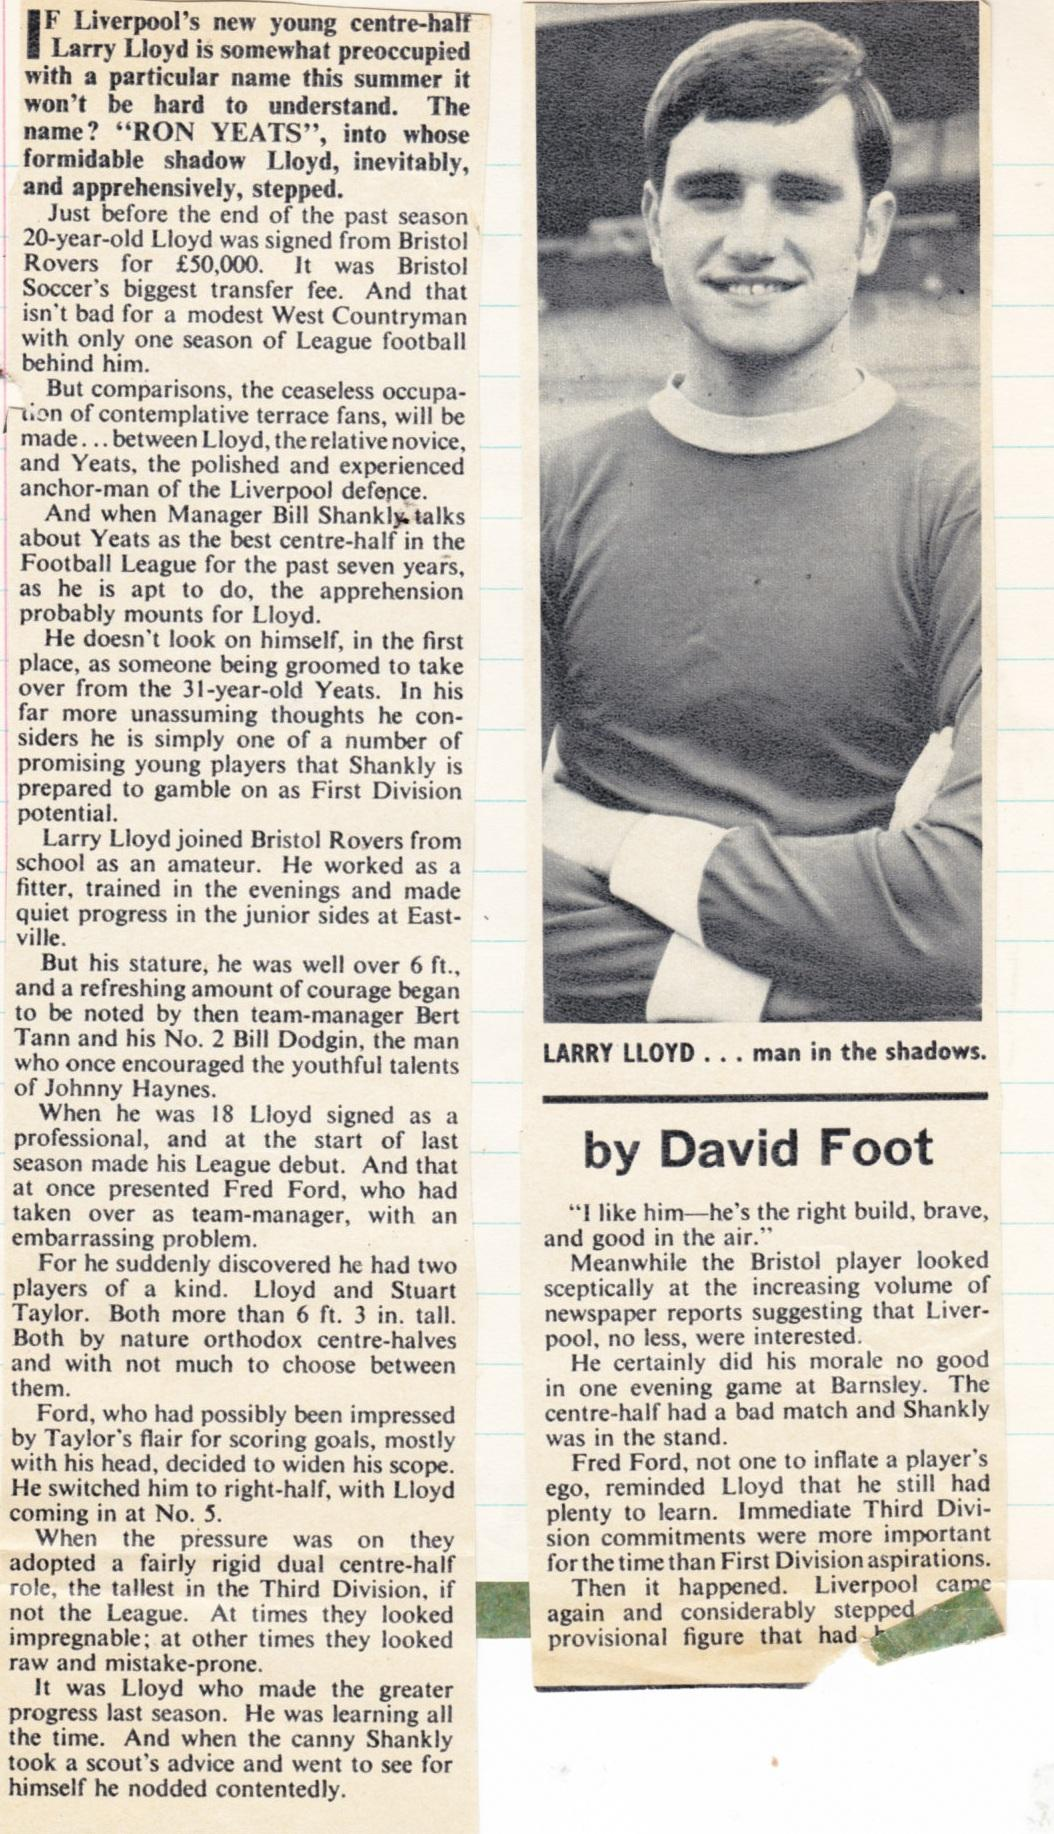 Larry Lloyd - the natural successor to Ron Yeats